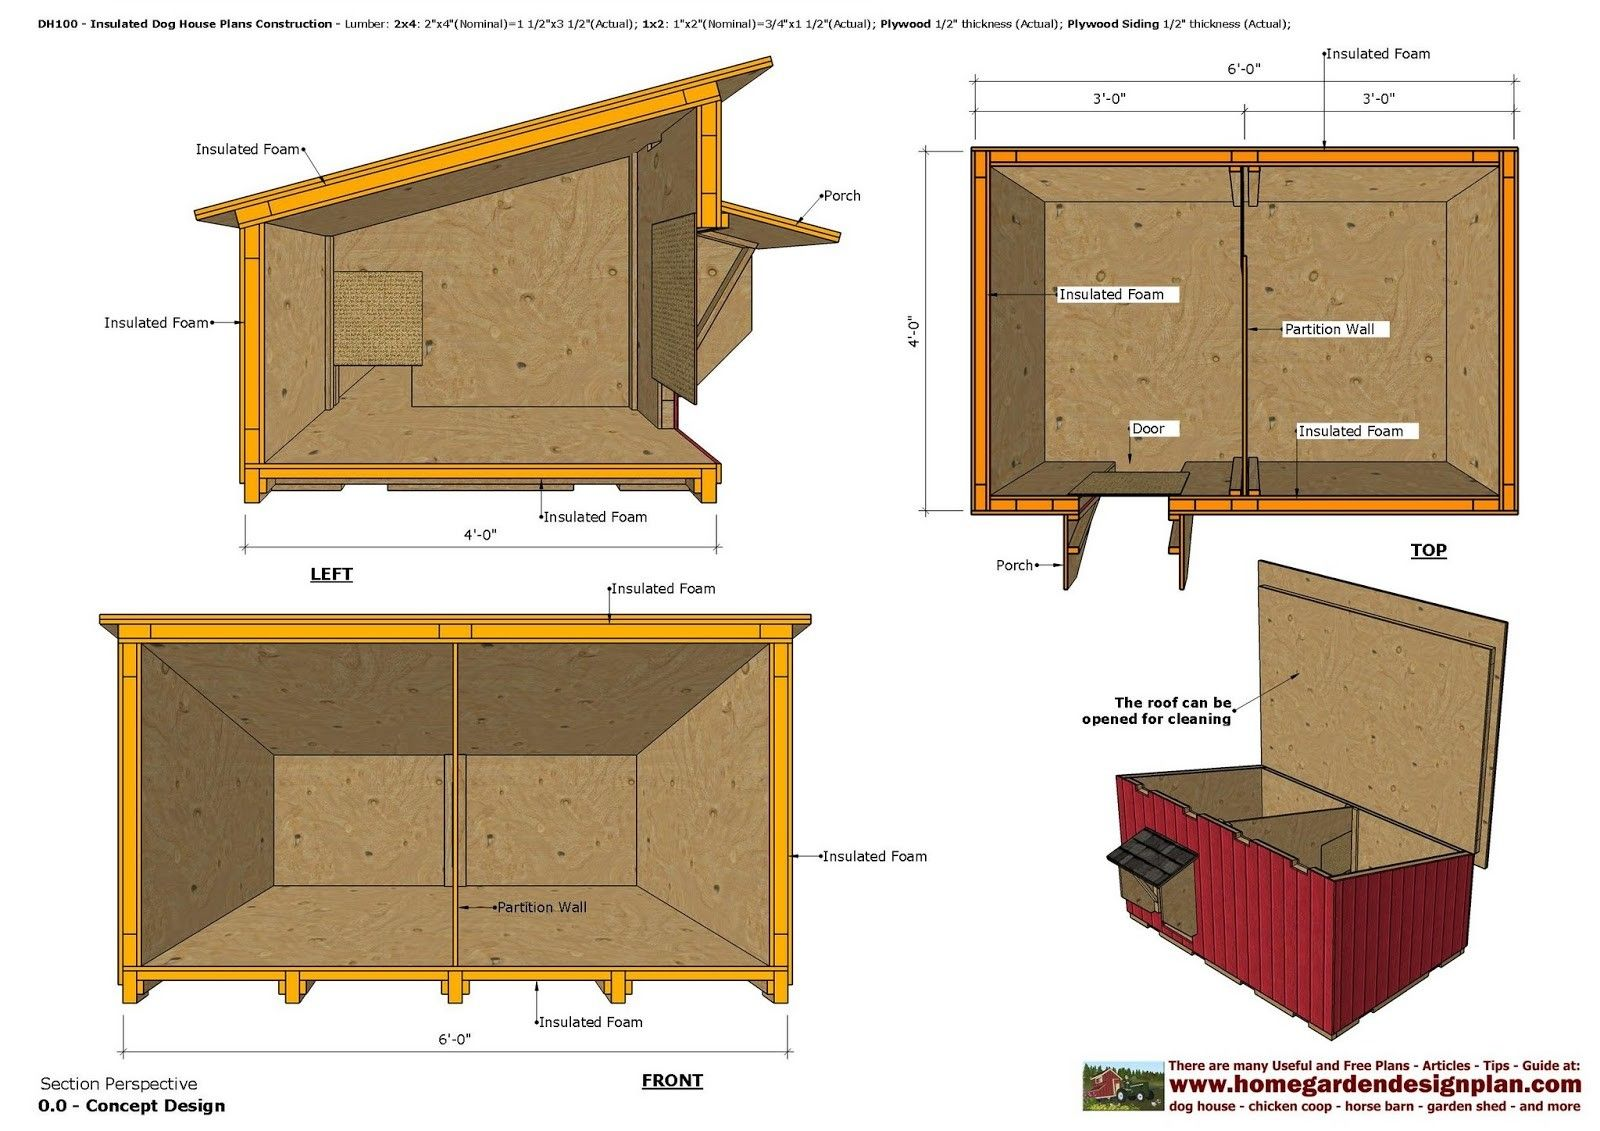 Insulated Dog House Building Plans Inspirational Home Garden Plans Dh100 Insulated Dog House Plans D Dog House Plans Insulated Winter Dog House Dog House Plans